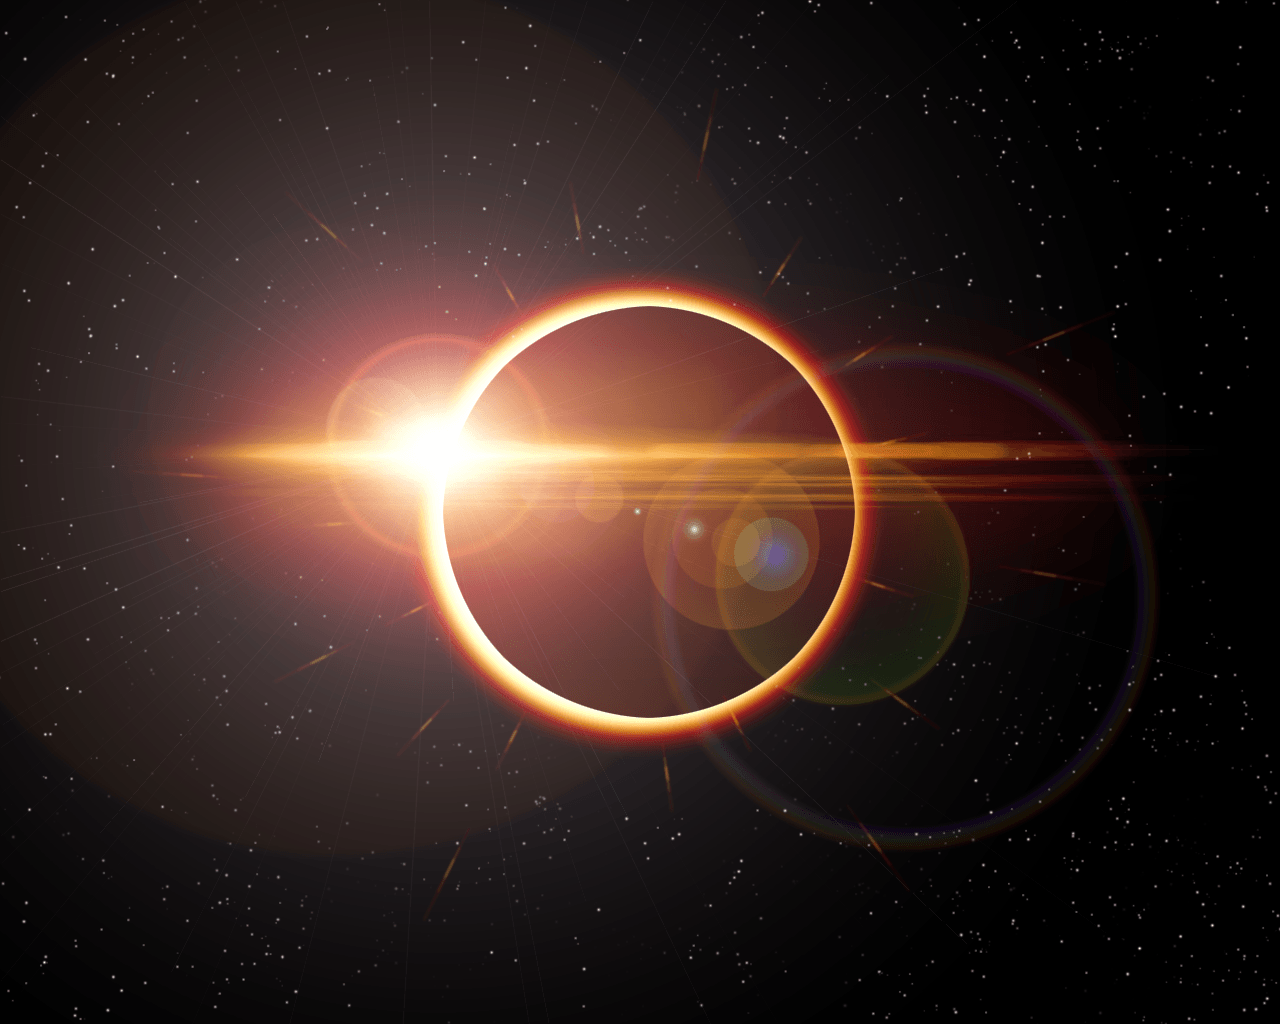 Solar Eclipse Wallpapers 670.9 Kb